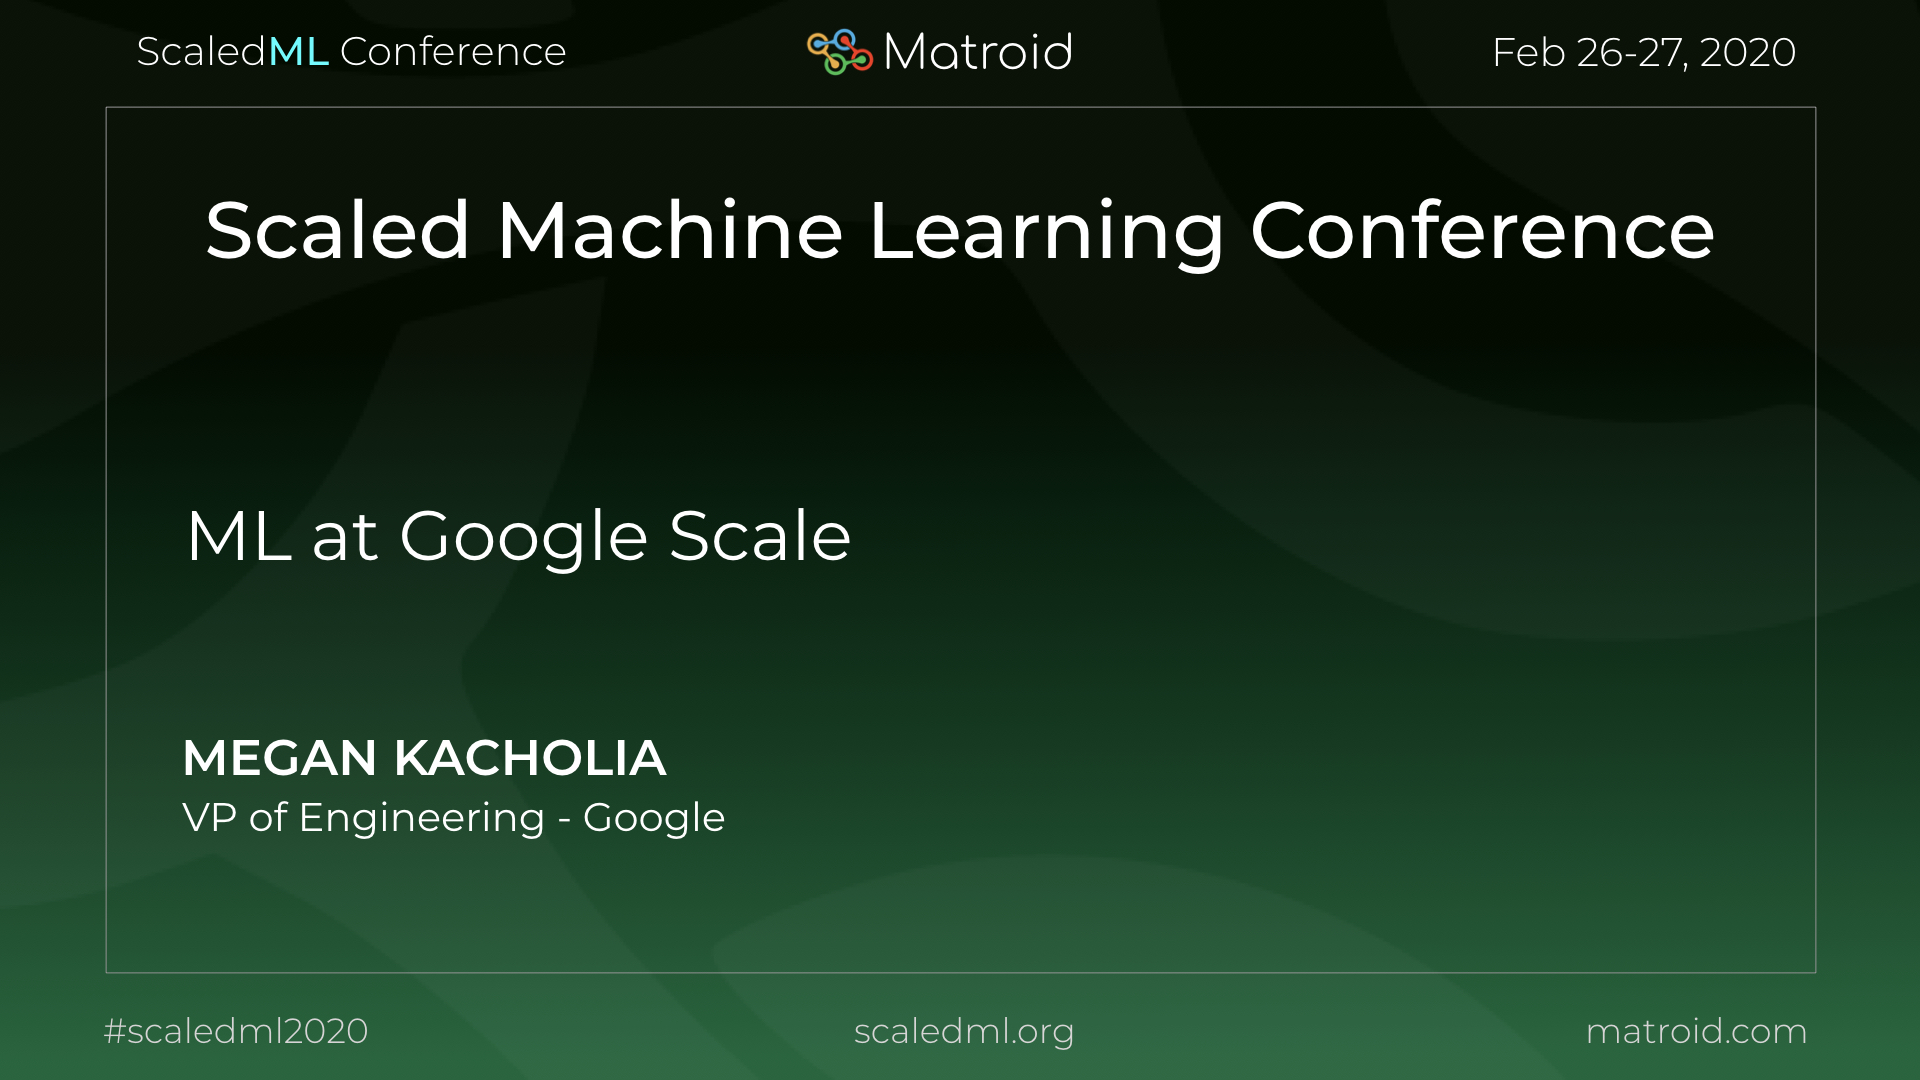 Megan Kacholia Google ScaledML Conference TPU CPU GPU Computer Vision AI Artificial Intelligence Machine Learning